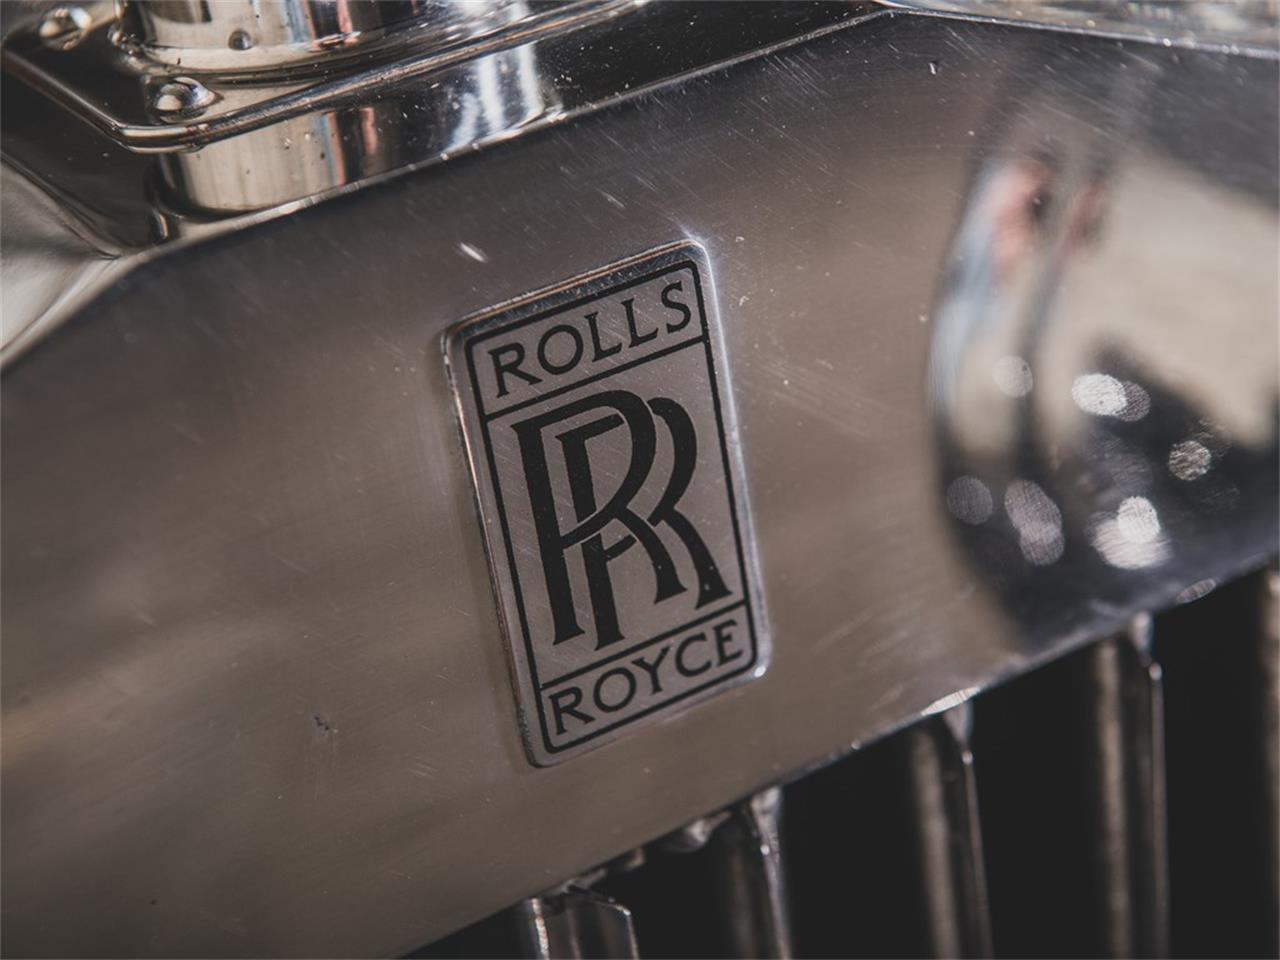 Large Picture of Classic 1931 Rolls-Royce Phantom II located in Missouri Auction Vehicle Offered by RM Sotheby's - PP9P